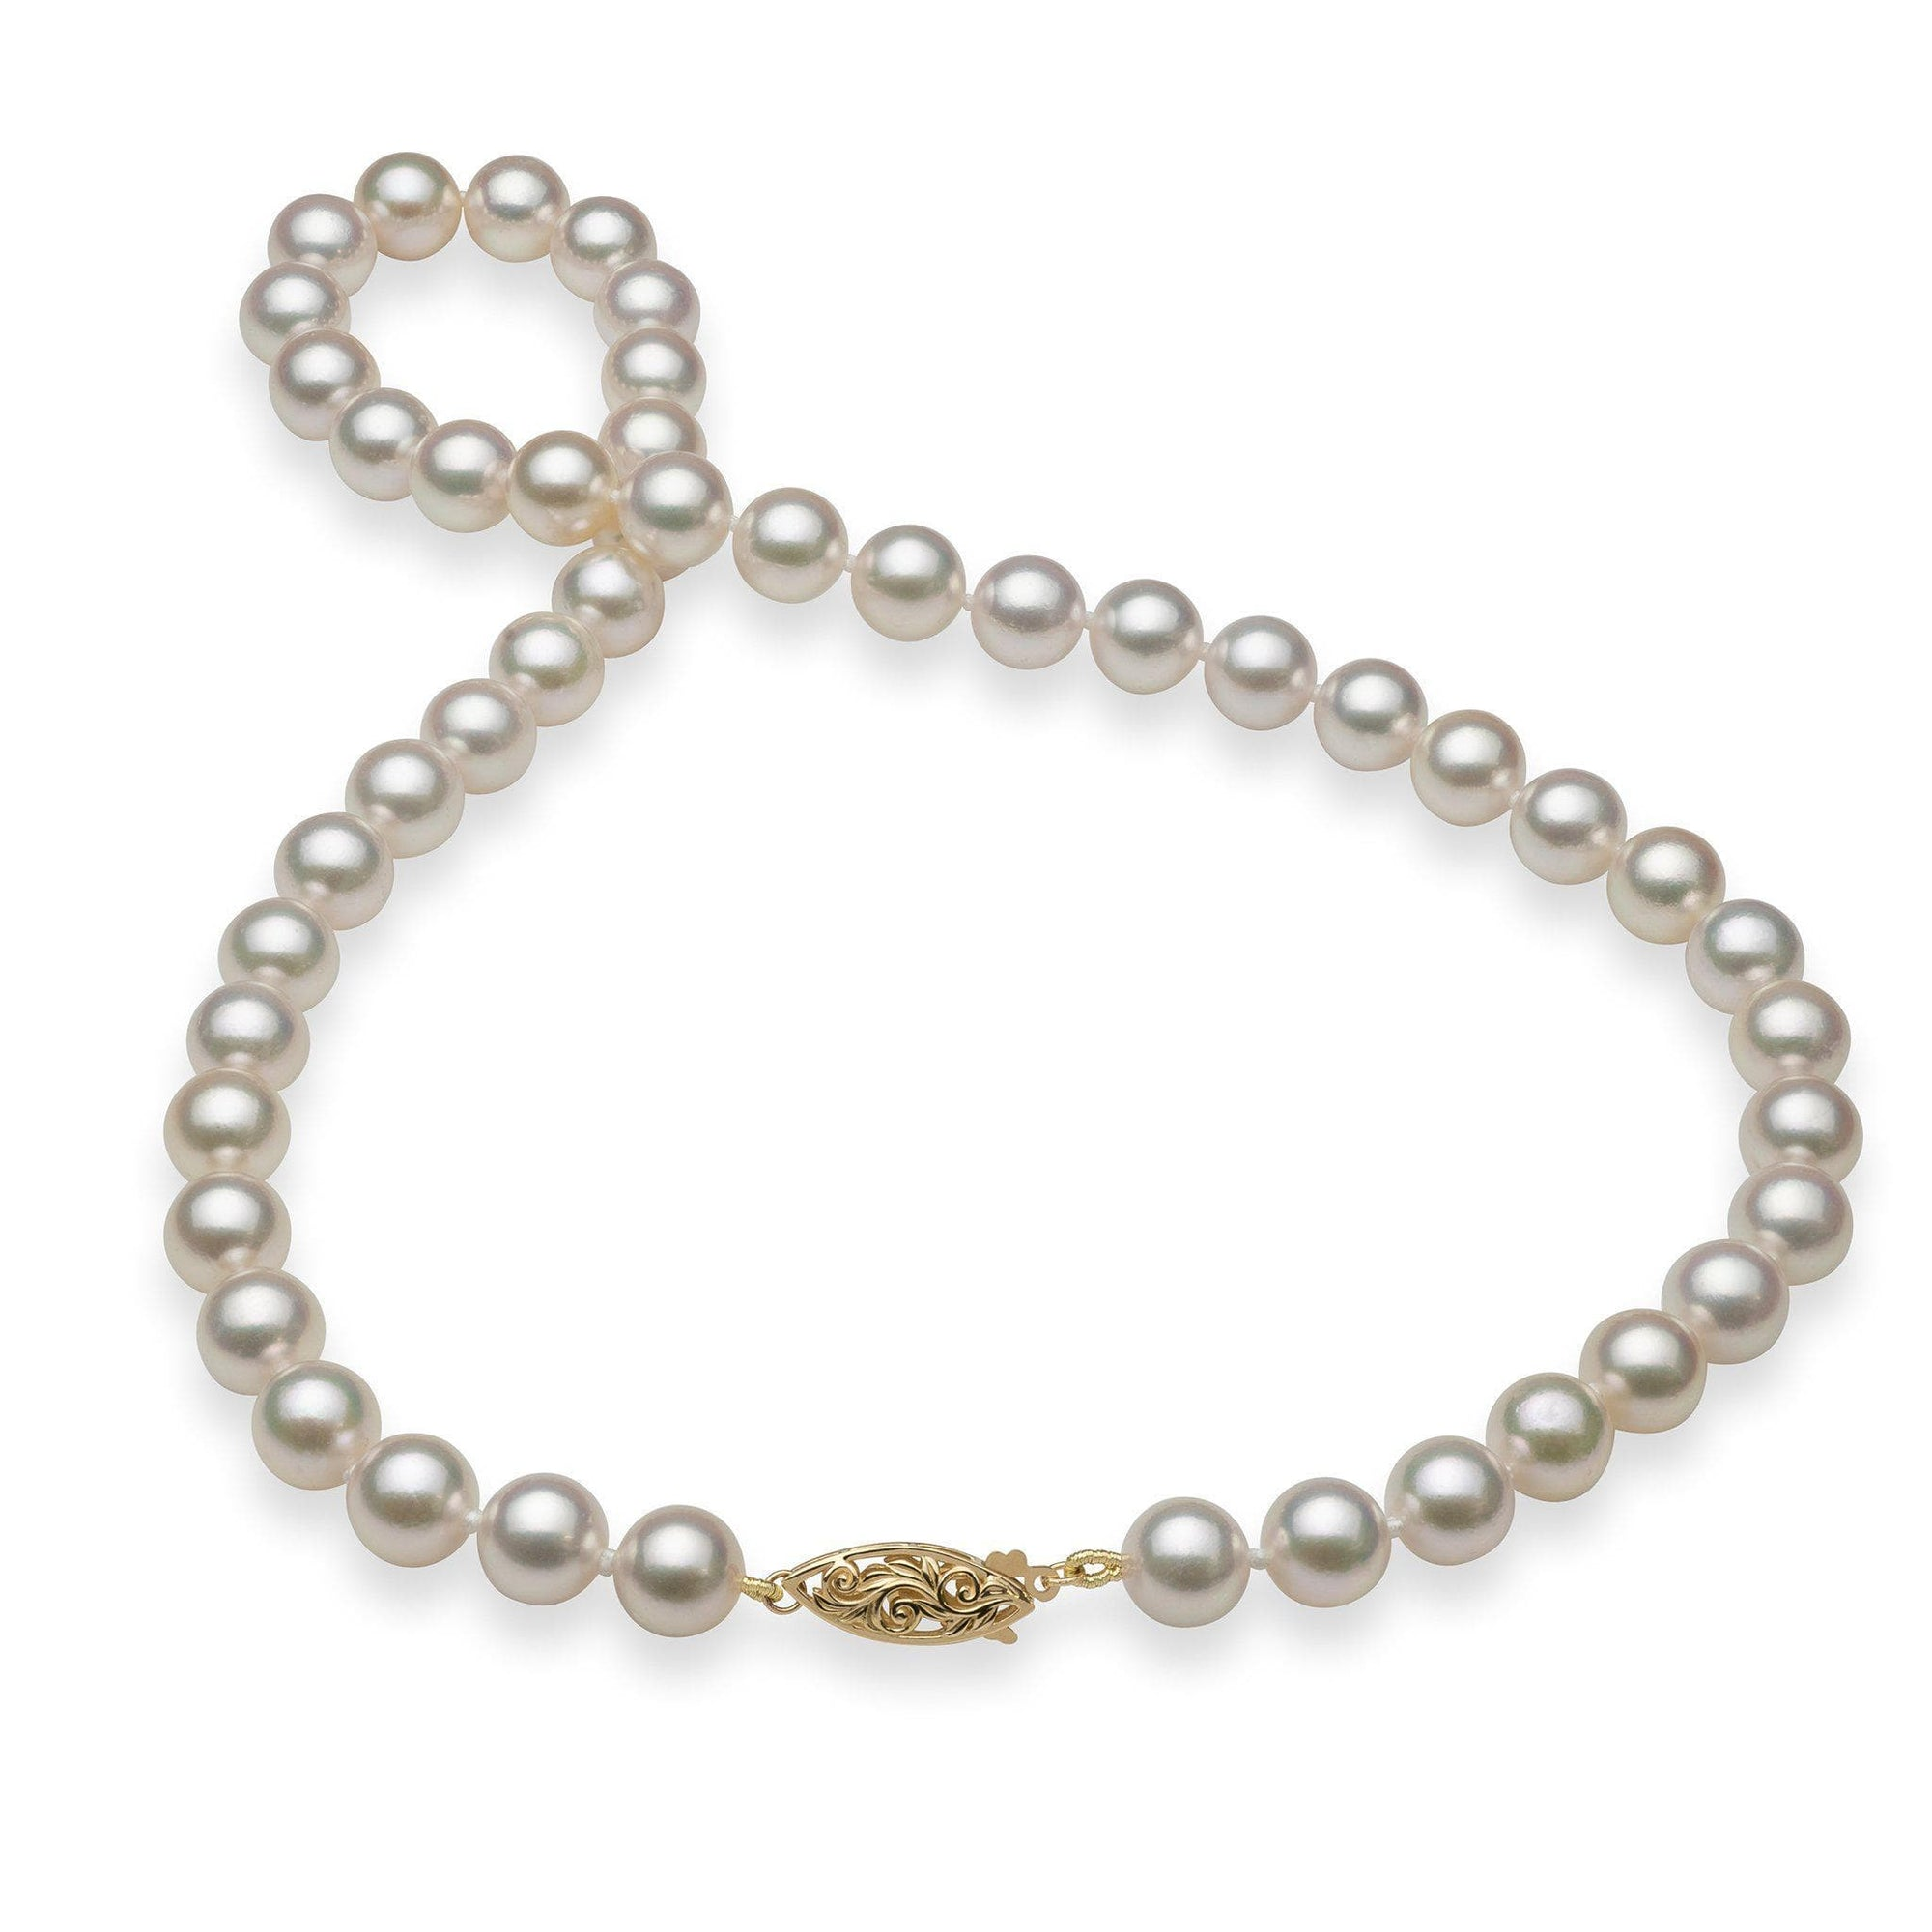 Akoya Pearl (8.5-9.5mm) Strand in 14K Yellow Gold